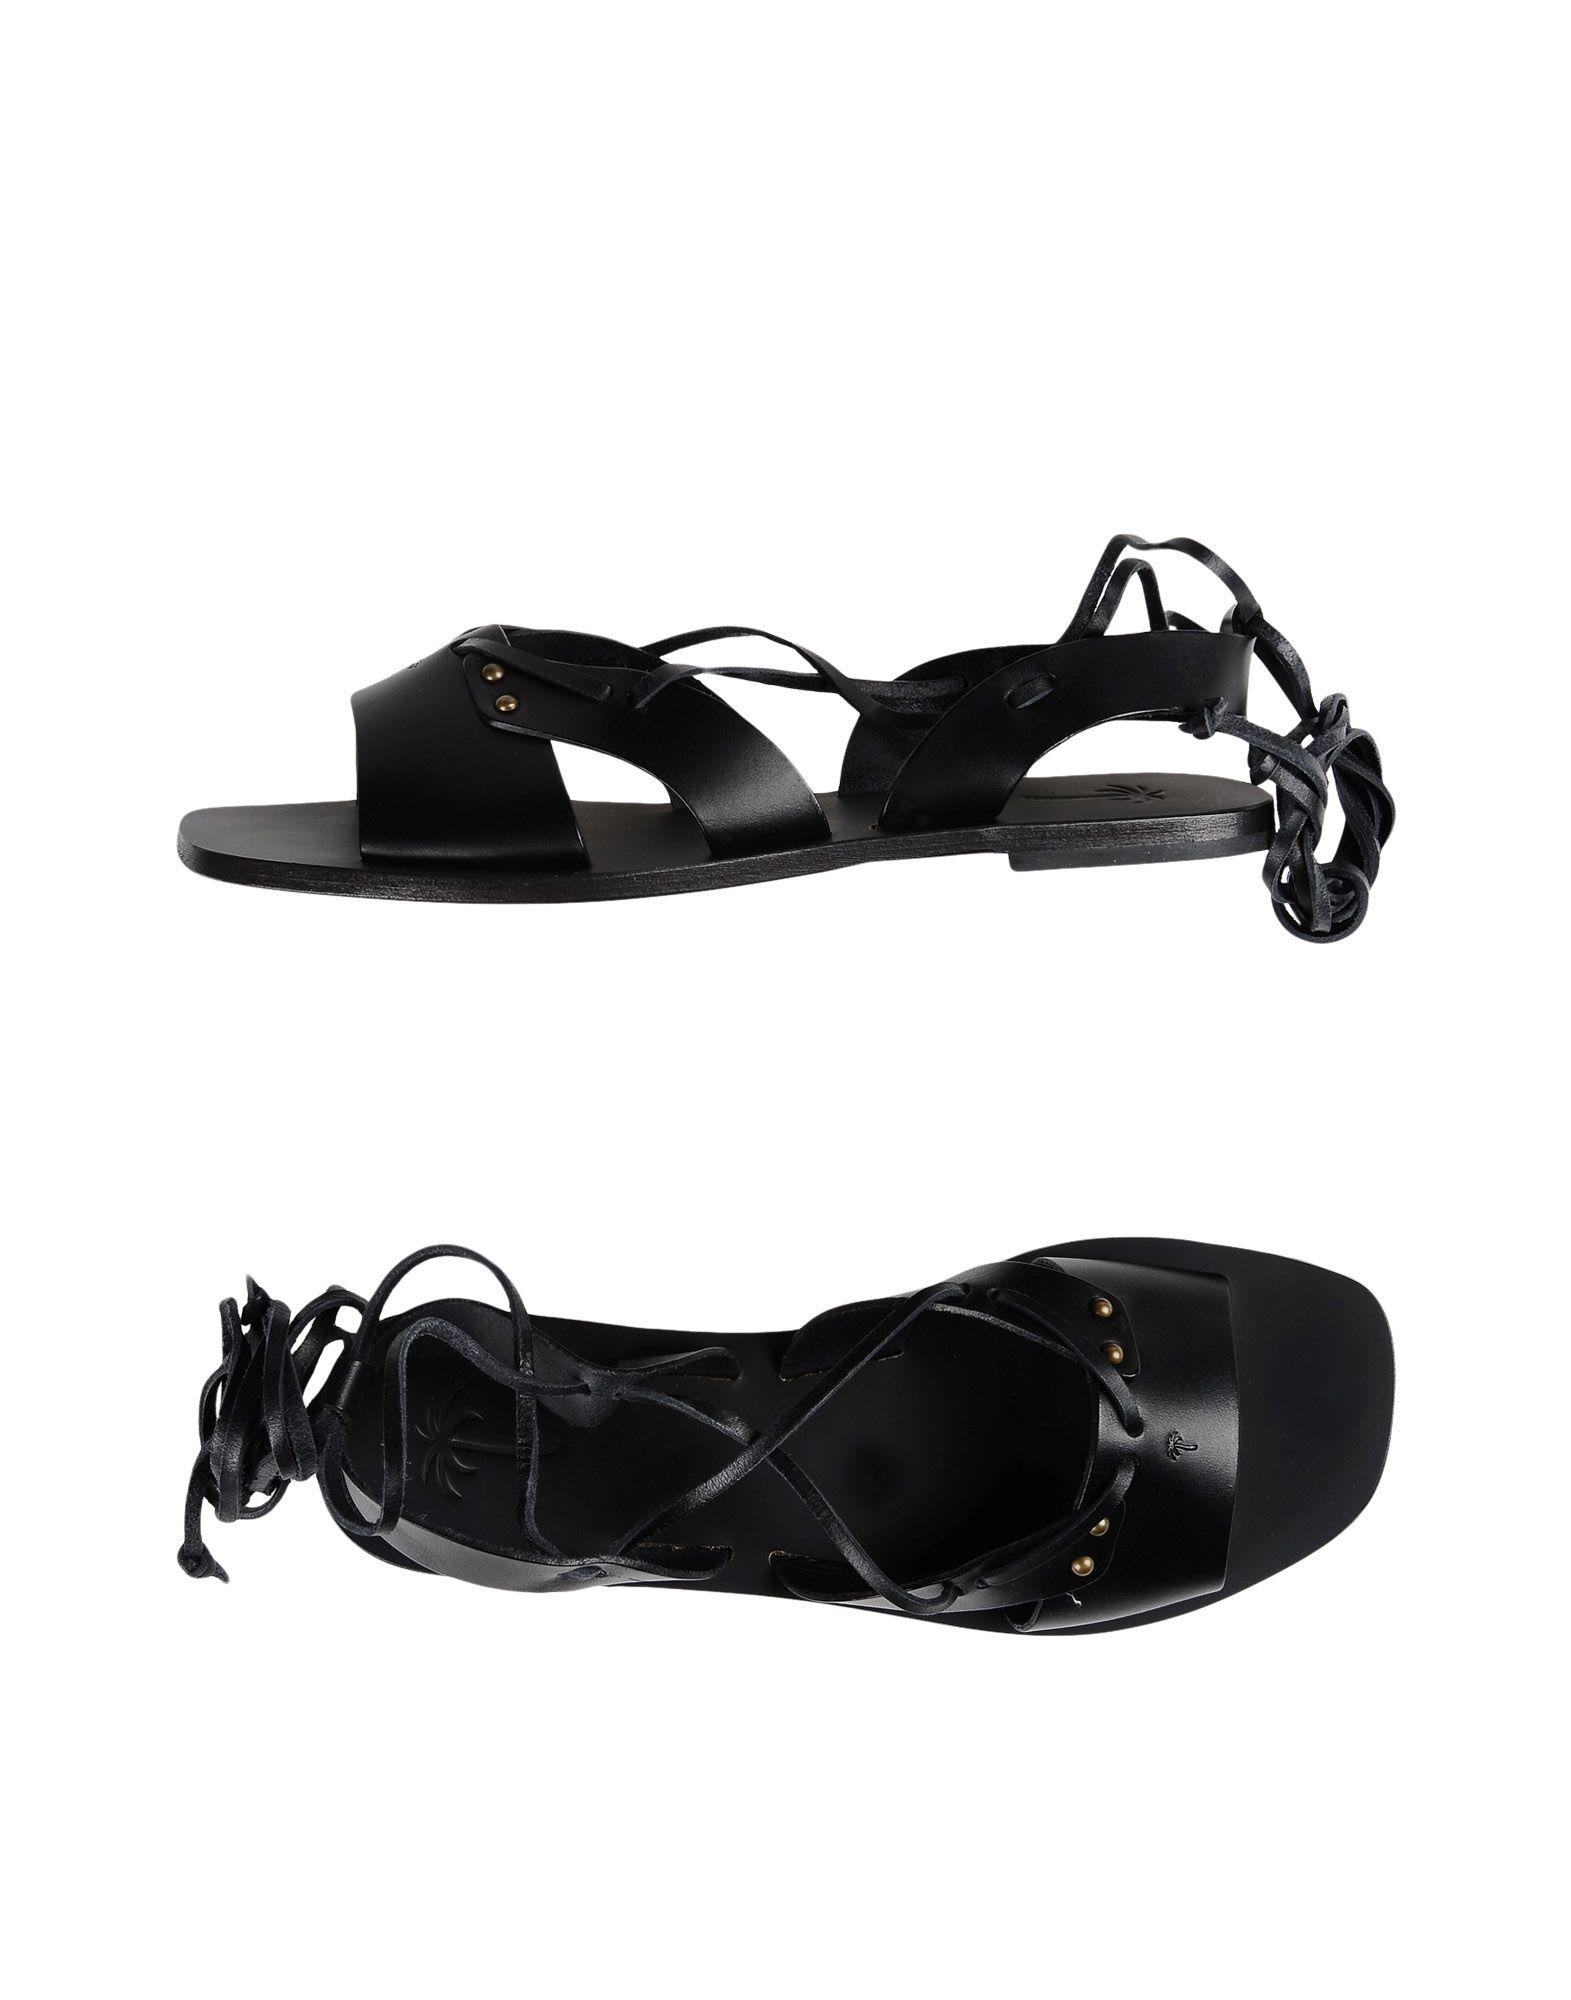 Tomas Maier Sandals In Black